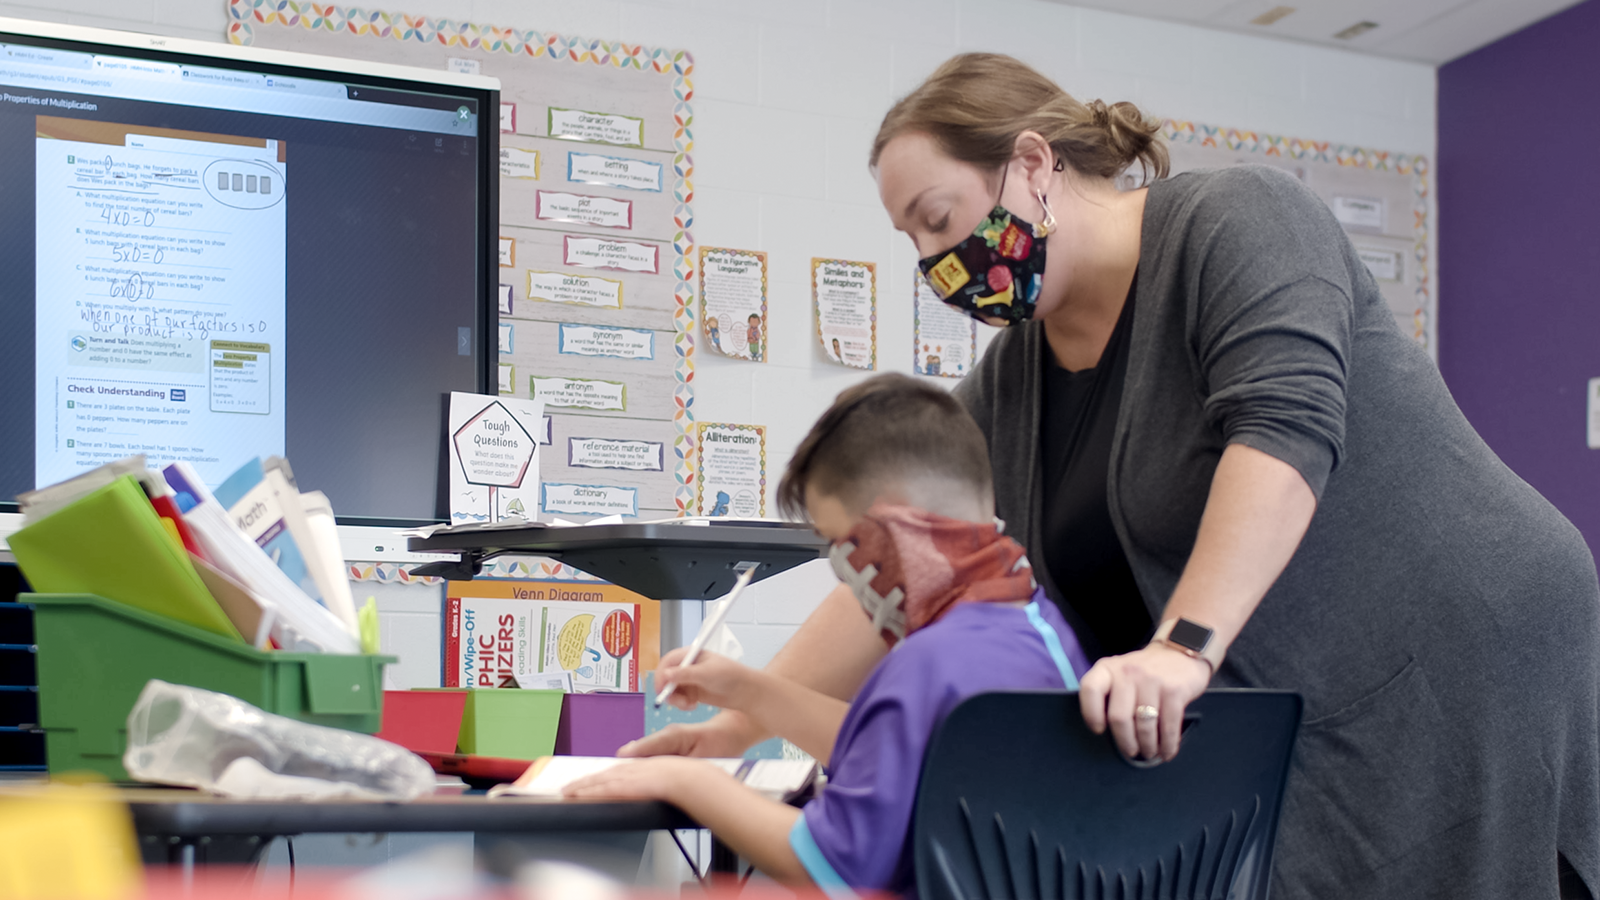 10 Middle School Classroom Management Strategies That Work